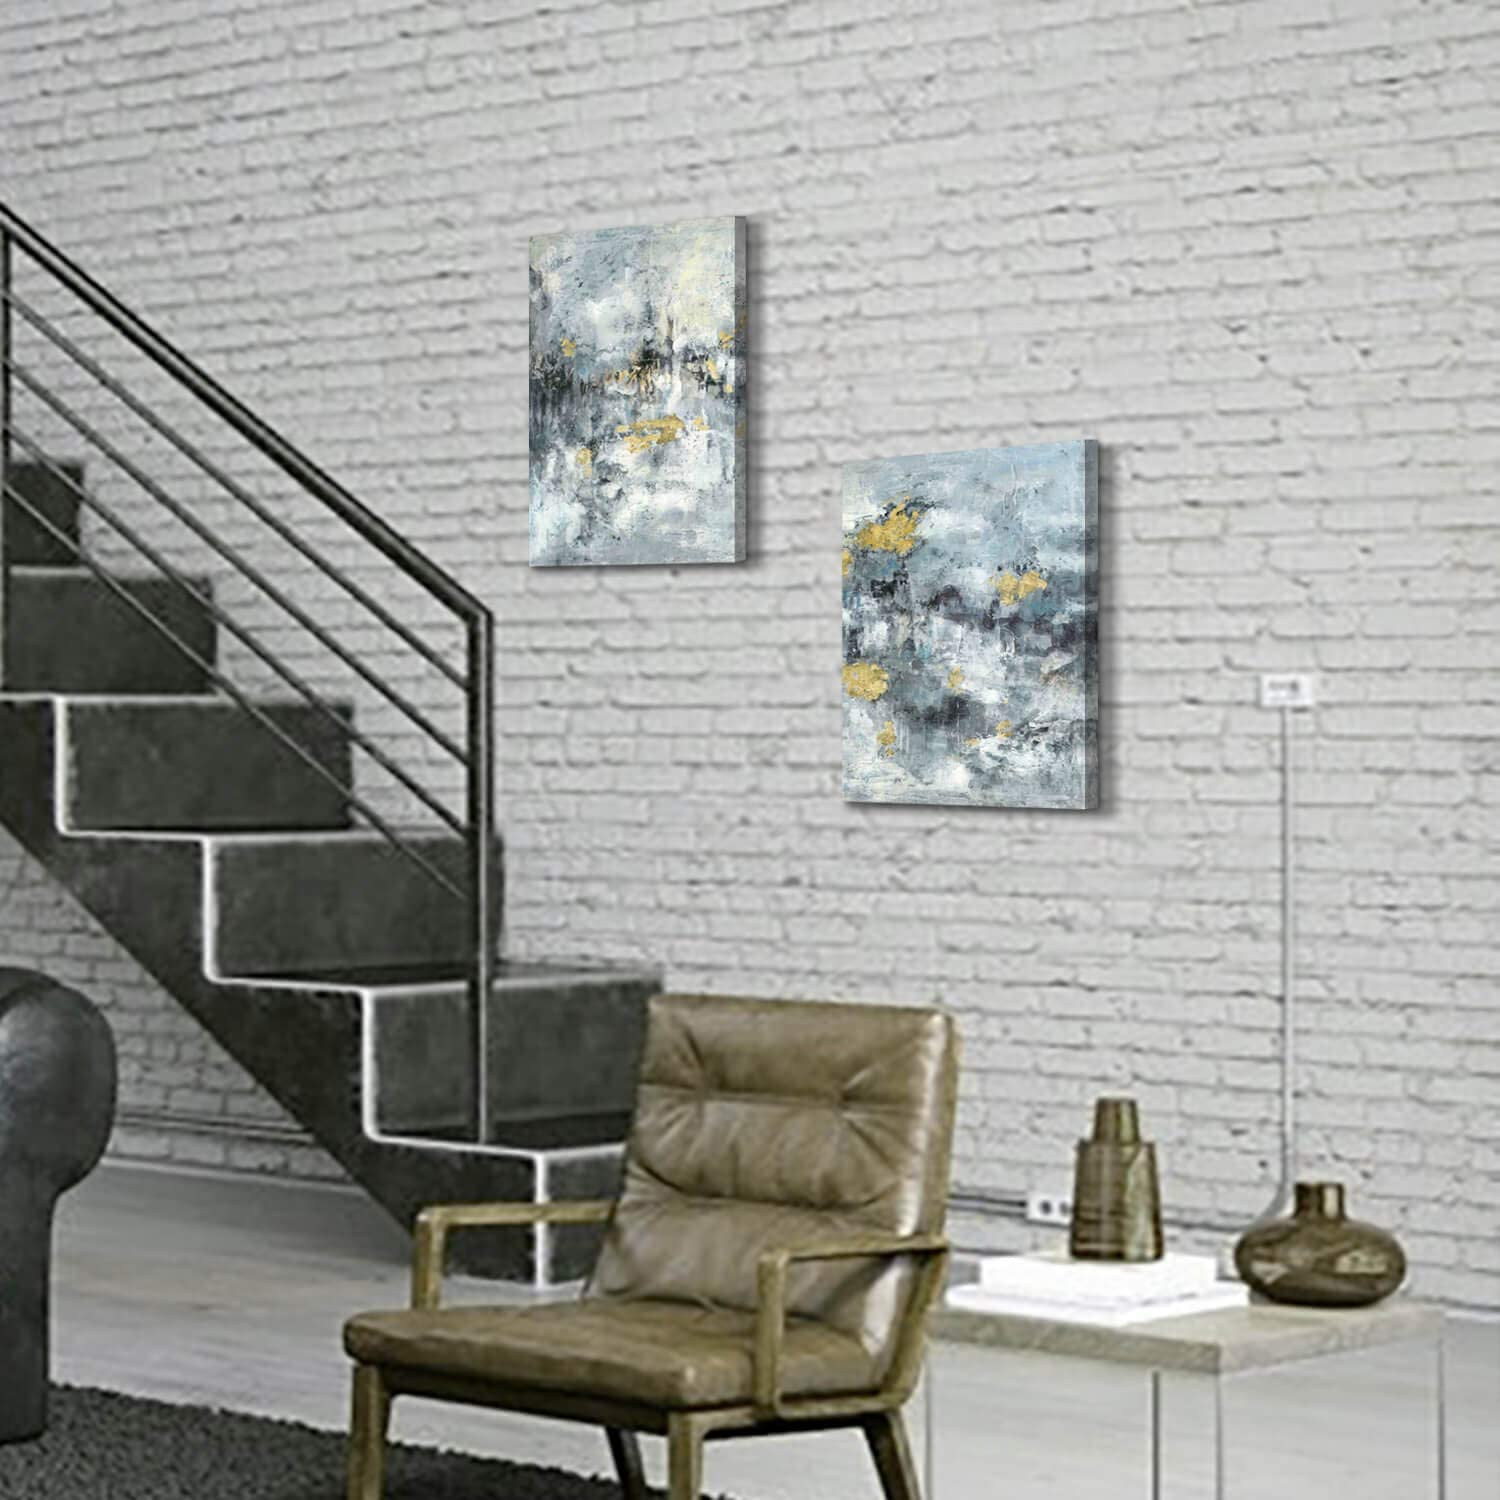 Abstract Mountain Painting Canvas Artwork Blue /& Gray Abstract Textured Wall Art with Gold Foils Picture for Dining Room 24 x 18 x 1 Panel